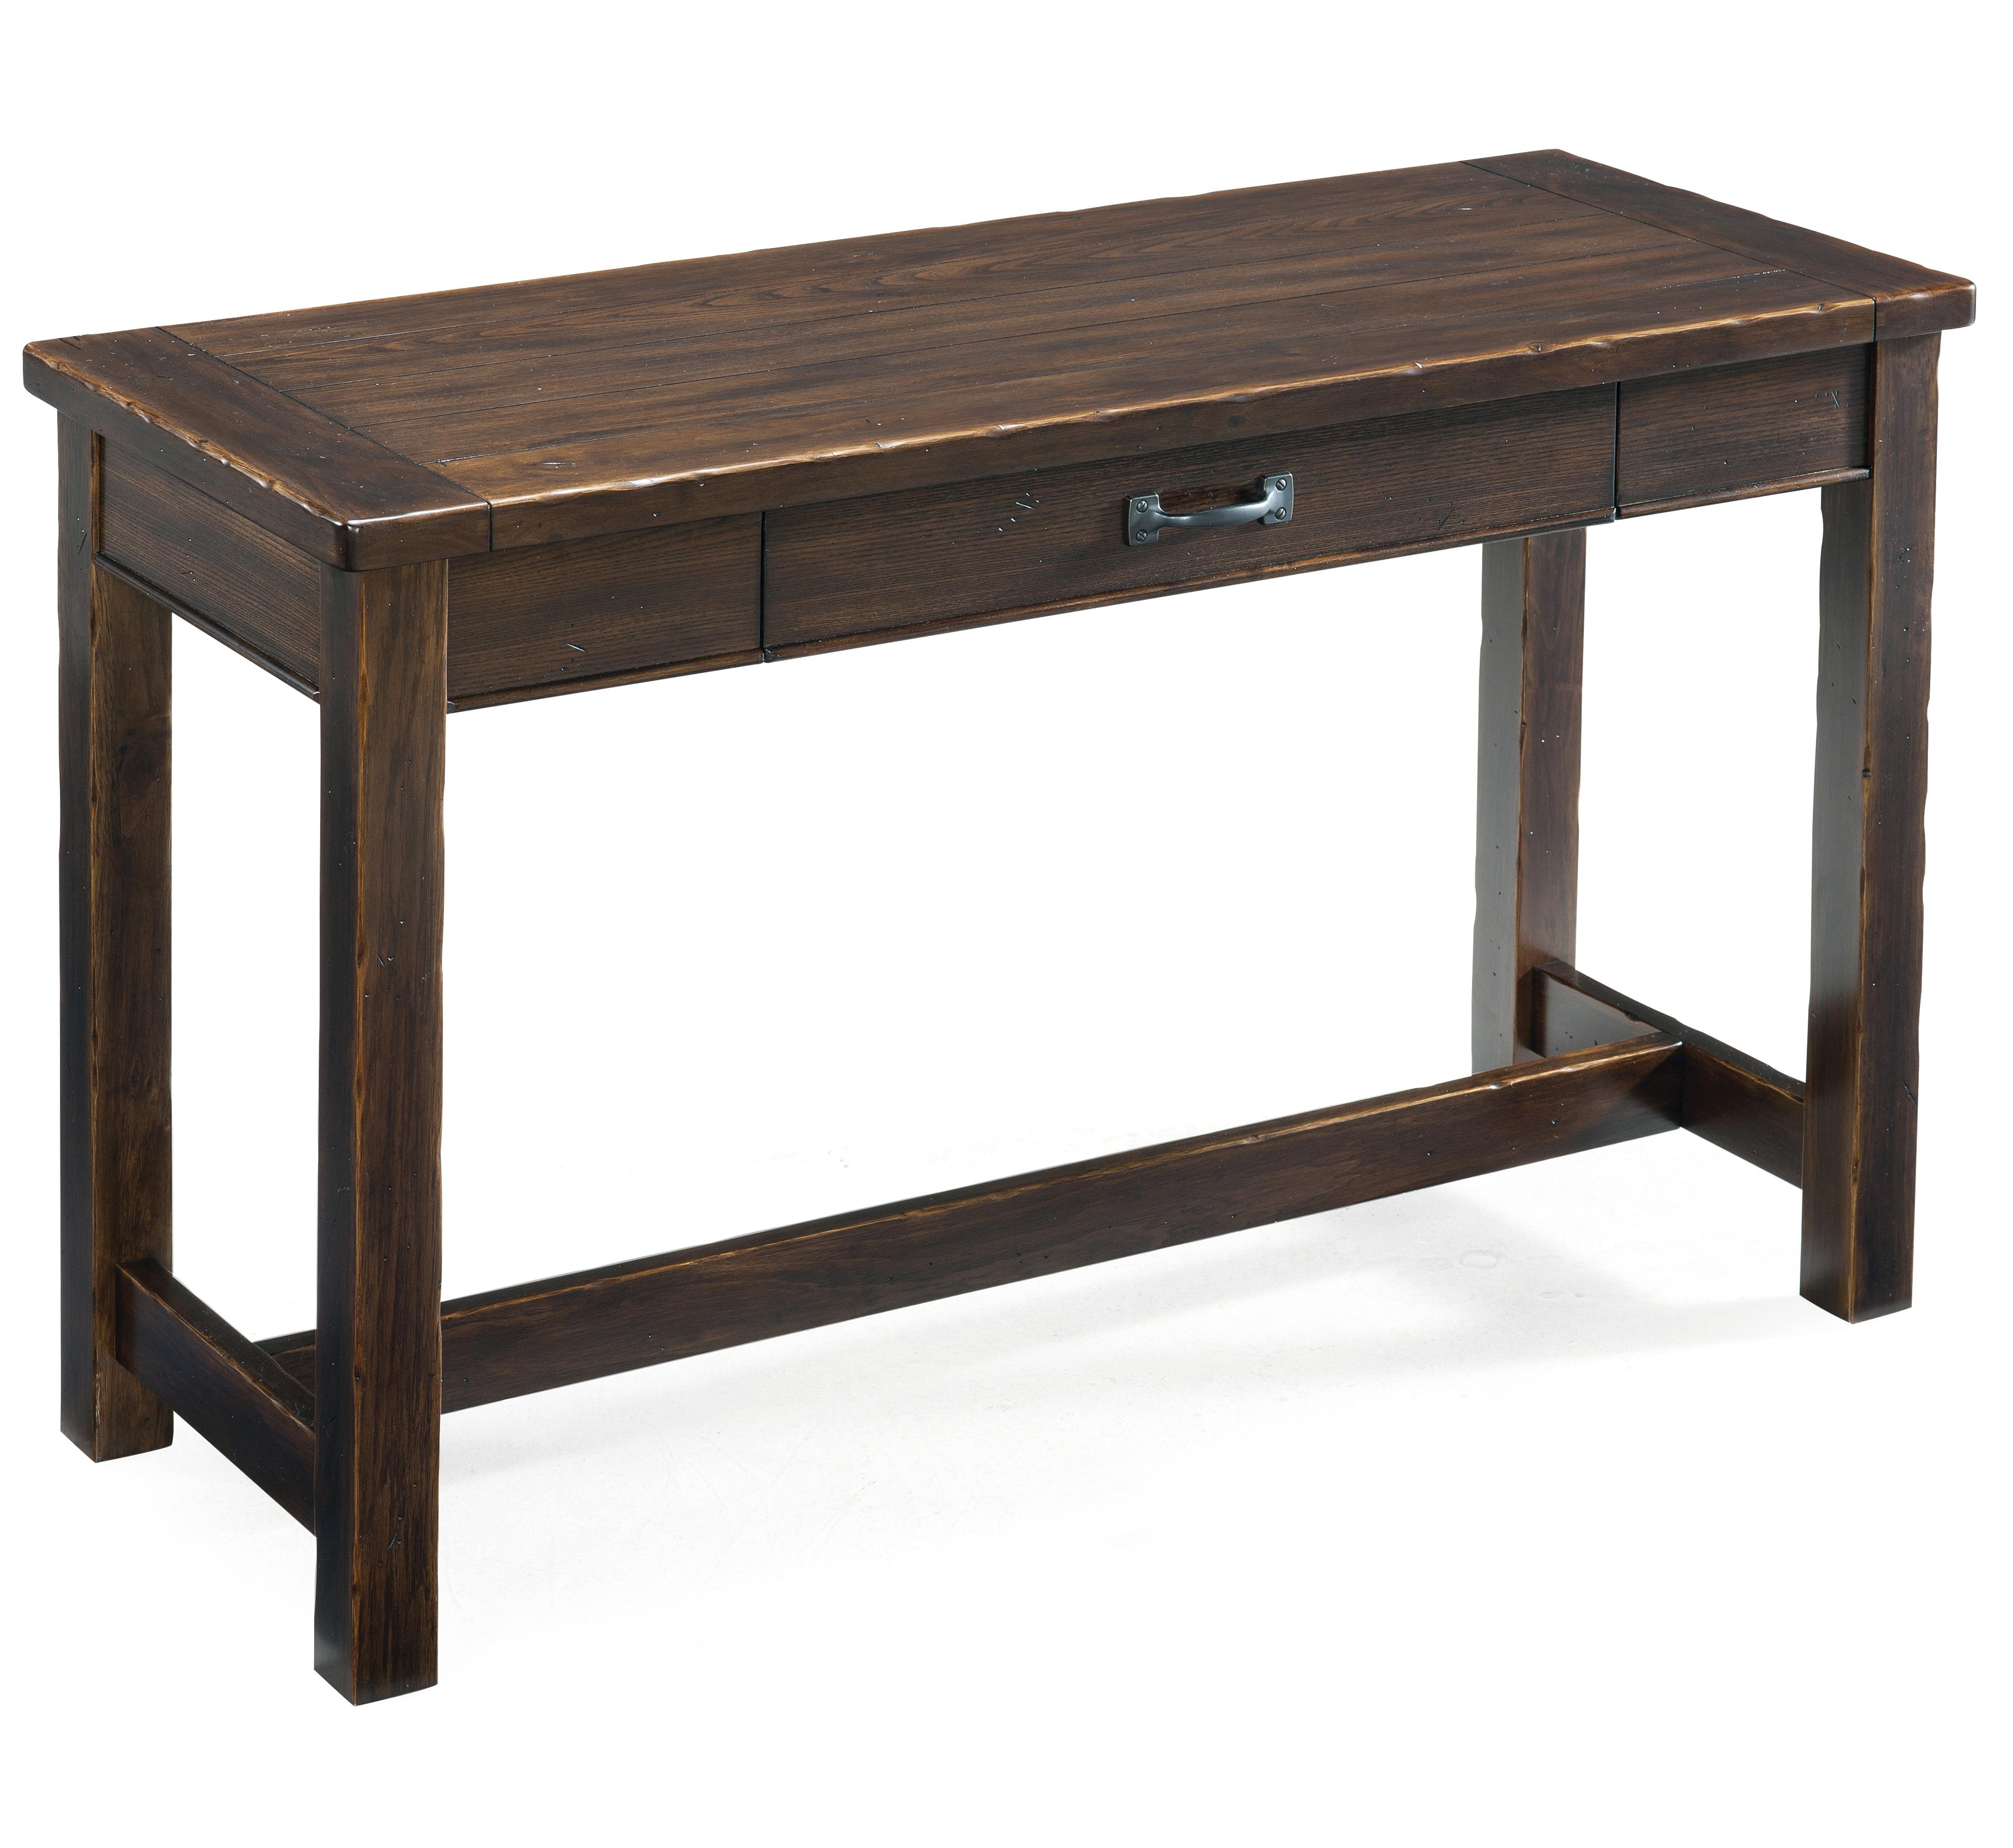 Magnussen Home Kinderton Rectangular Sofa Table - Item Number: T2398-73